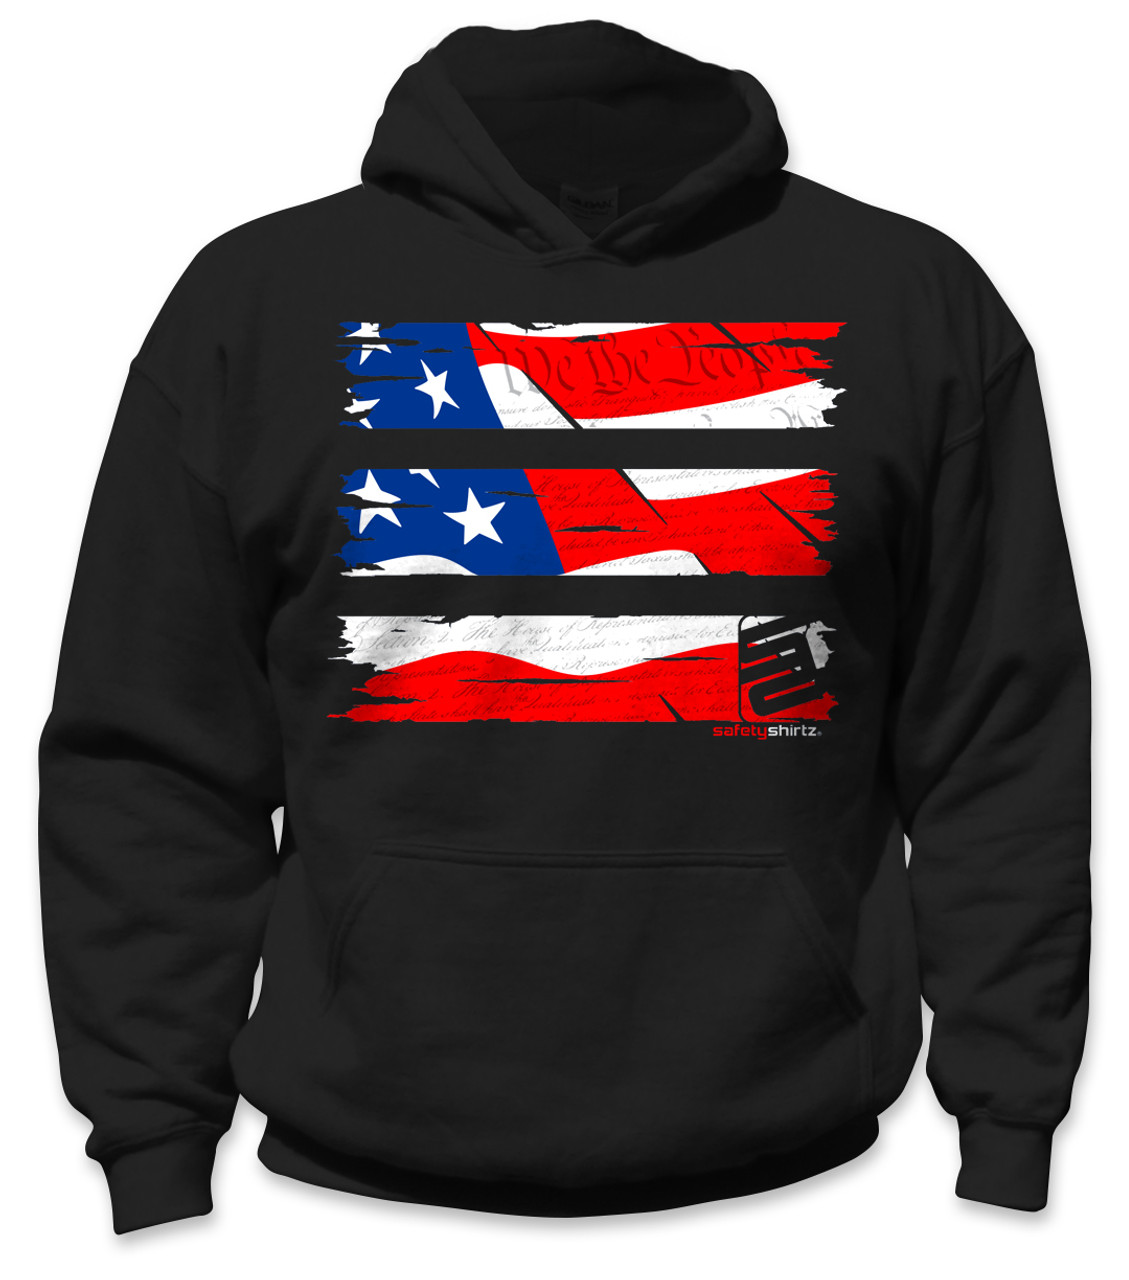 022532cba SafetyShirtz - Youth Old Glory Safety Hoodie - Red/White/Blue/Black -  Safetyshirtz